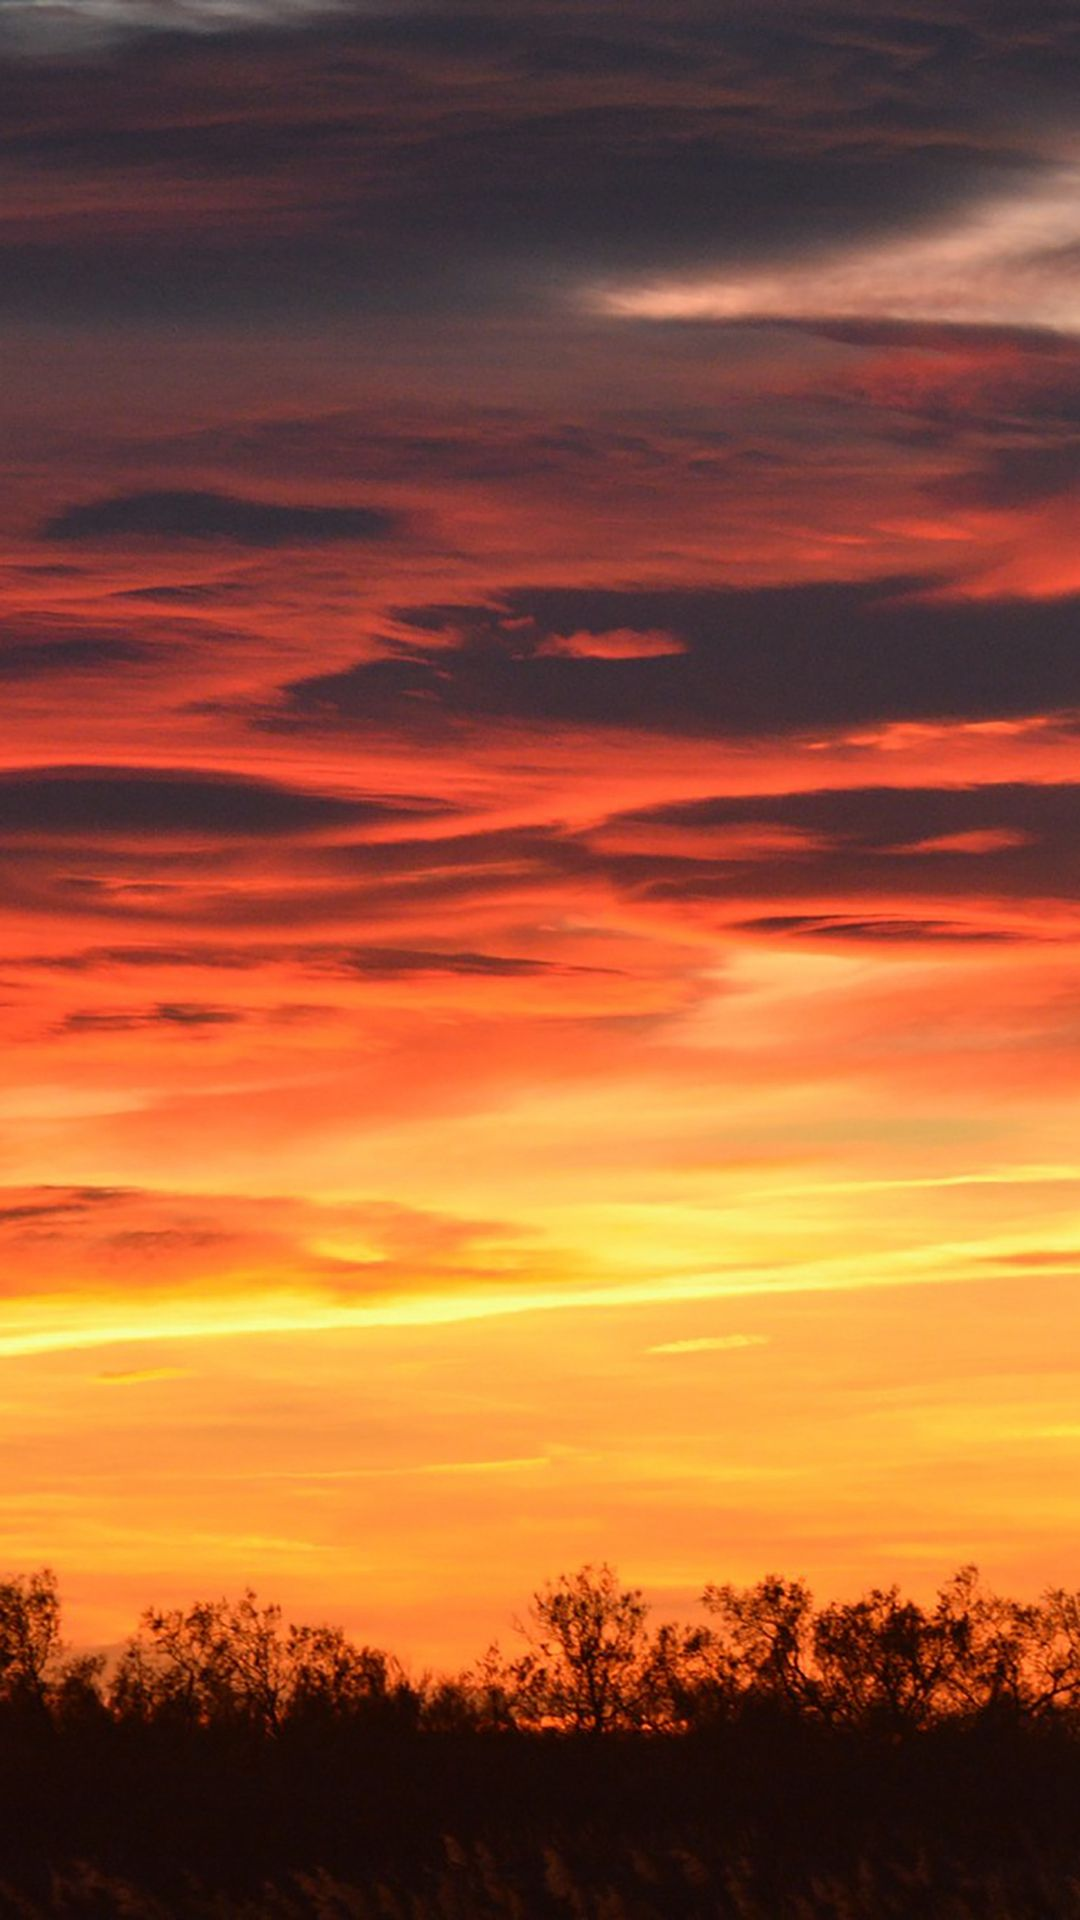 Cloudy Bright Sunset Sky View Iphone 6 Wallpaper Sunset Sky Sky View Iphone 6 Wallpaper